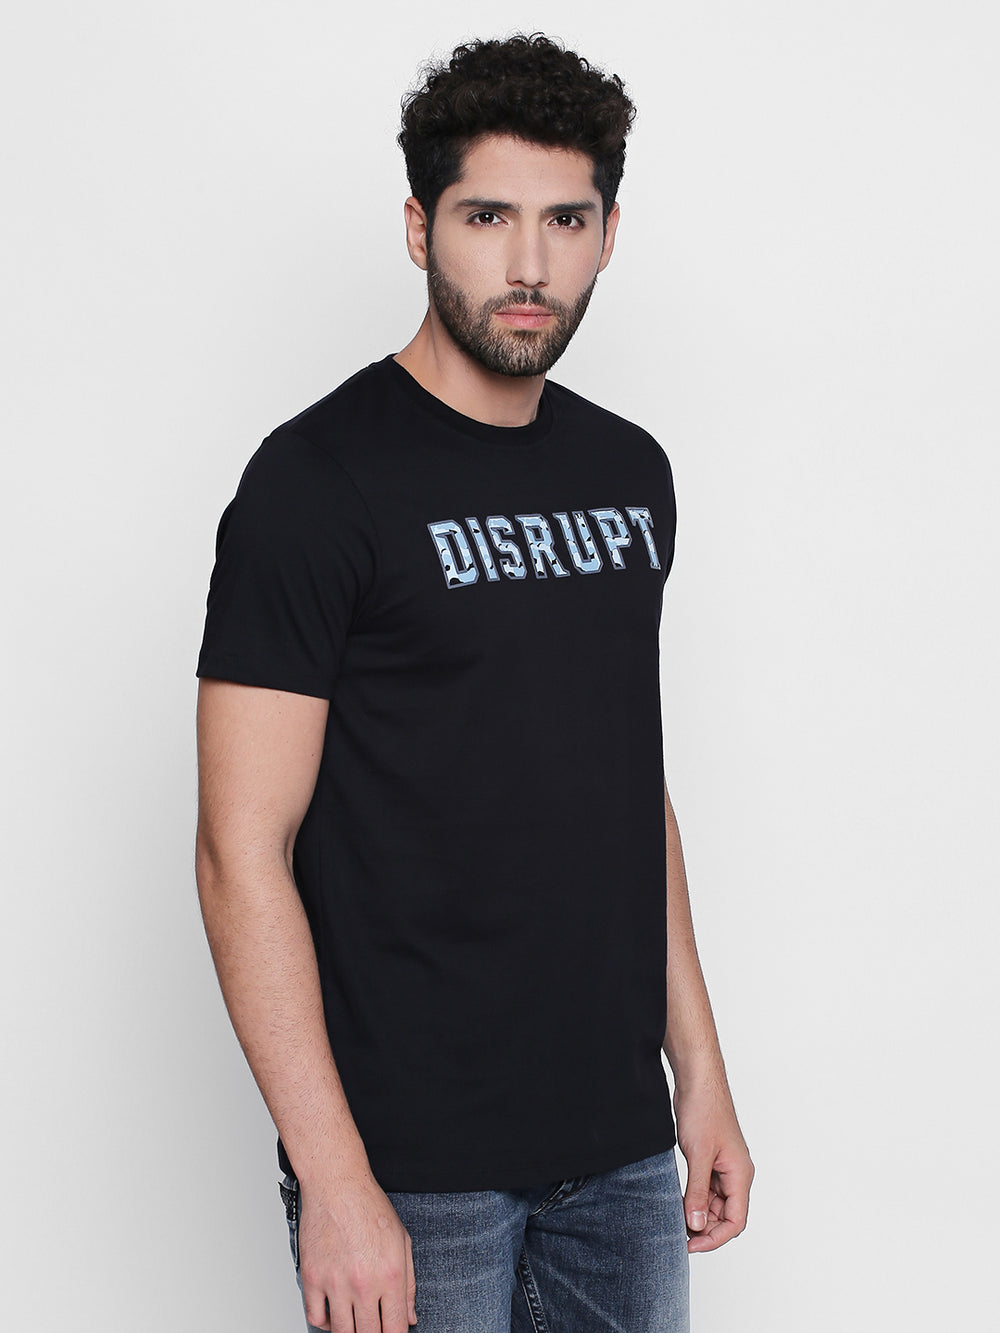 Disrupt Graphic Print Cotton Half Sleeve T-Shirt